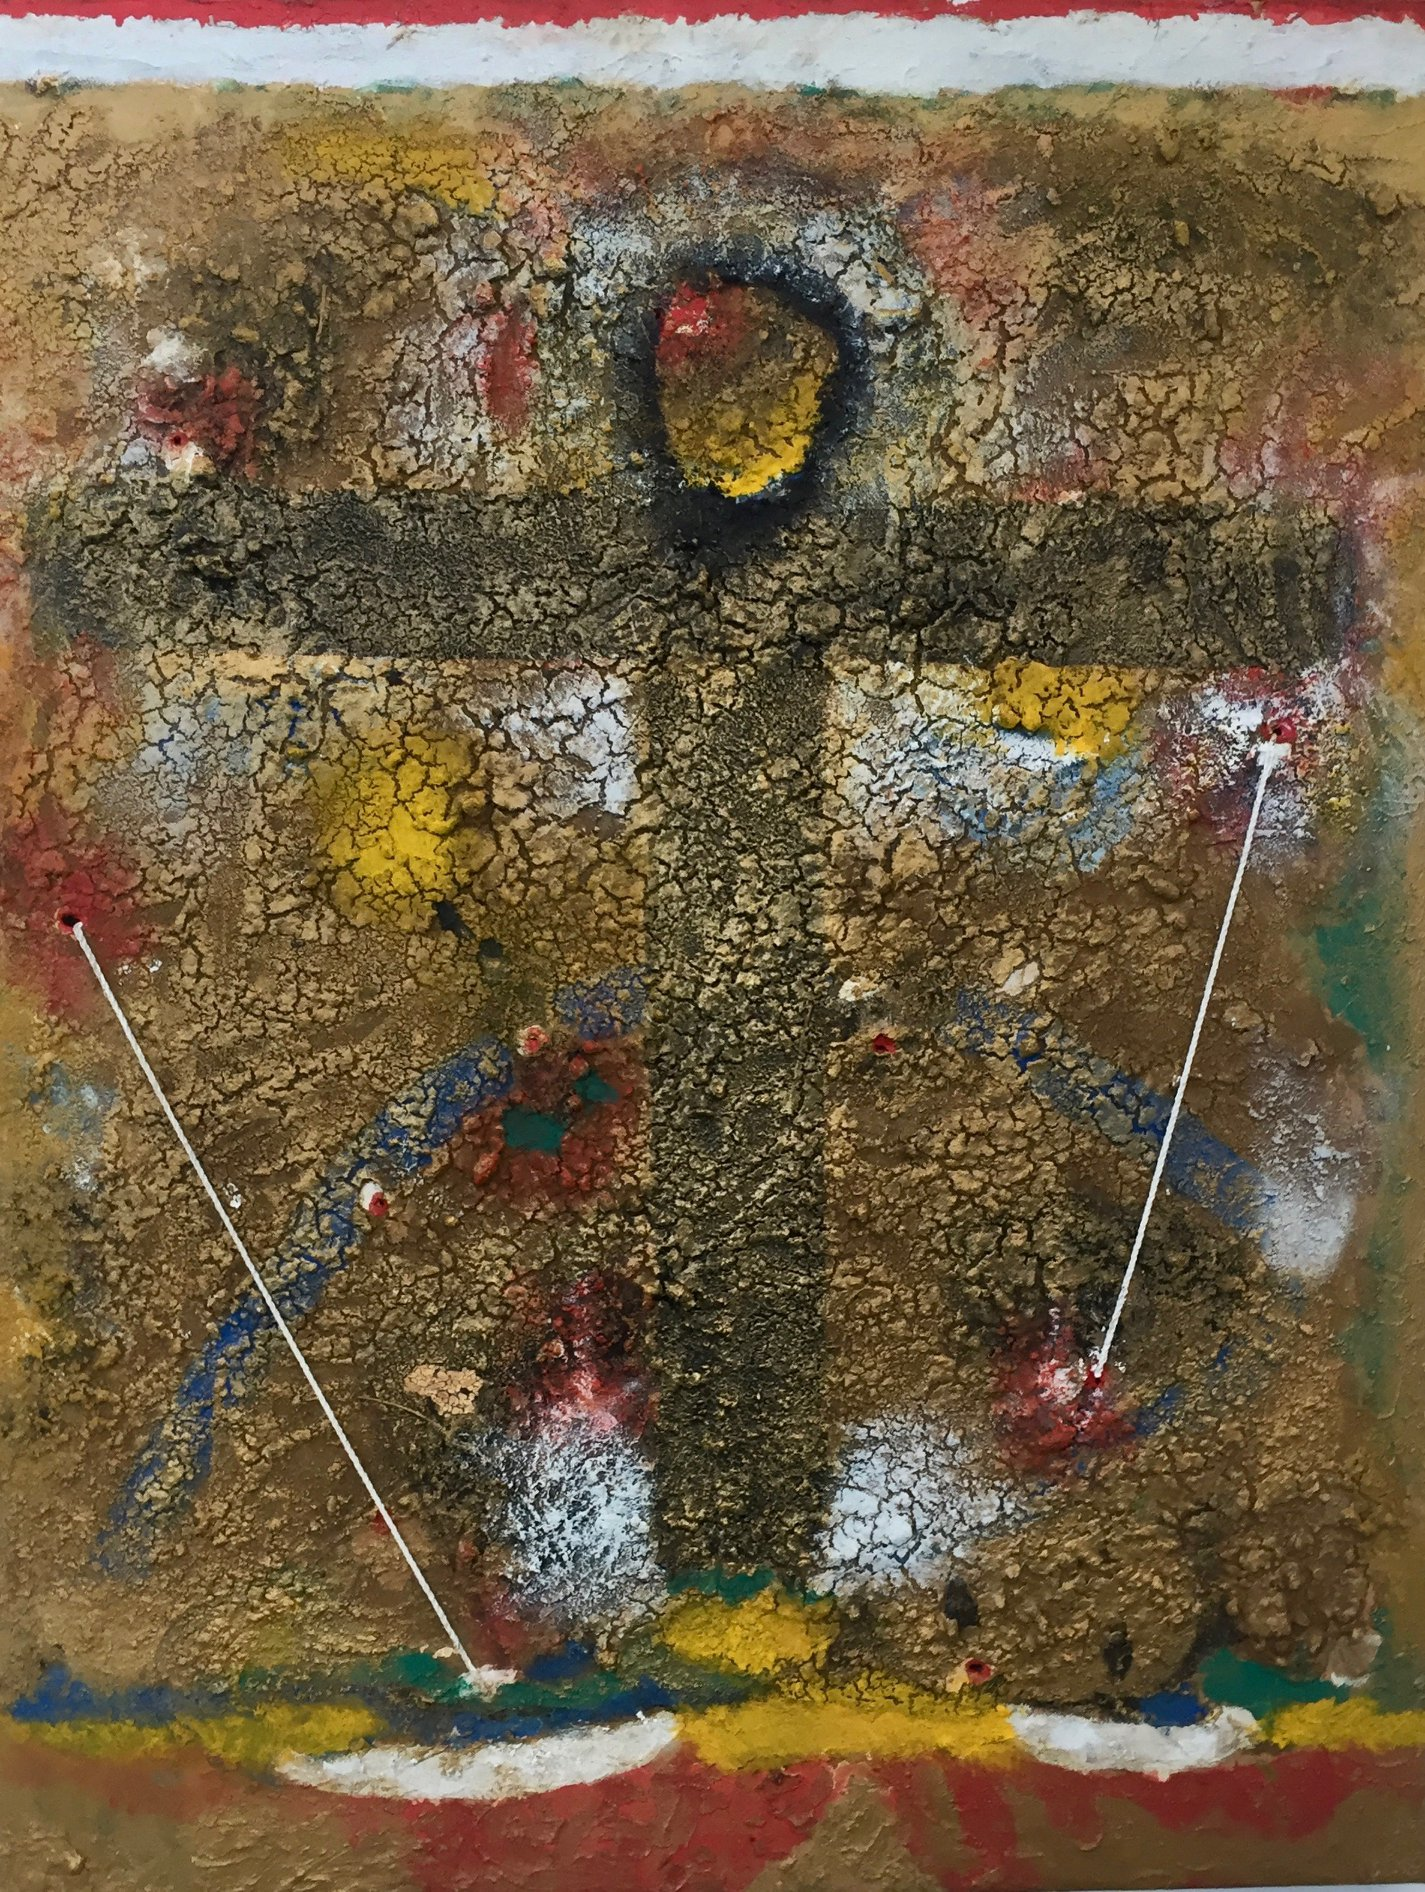 Papo Colo_Pangea Art Republic_Artist Studio in the Rainforest_Oil earth Pigment and string on canvas.jpg